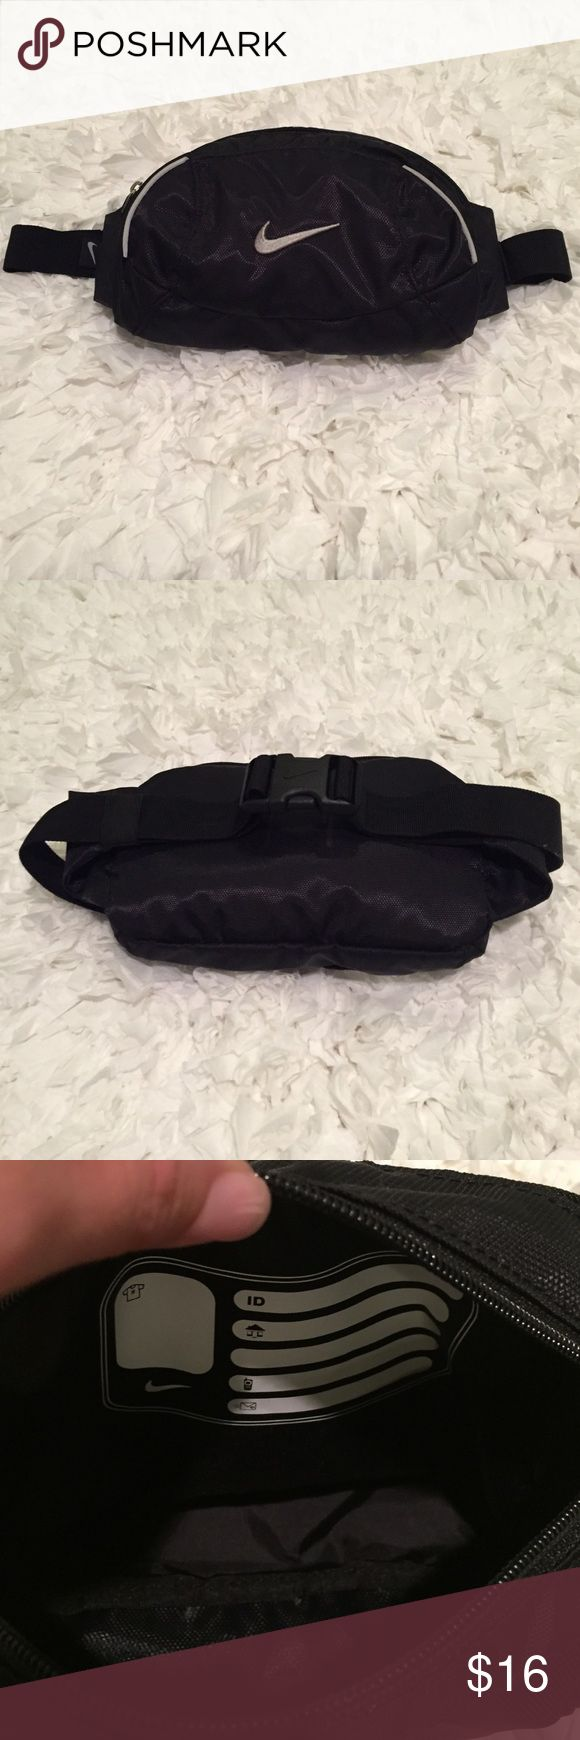 Unisex Nike Fanny Pack Unisex Nike Fanny Pack. Gently used once. EUC. Black with gray trim & gray logo on front. Adjustable with snap closure. 2 zip close pockets with 1 having a place to write your info on it if u choose & a clip to keep your keys. Great for when u exercise, run & great to pack for vacations! 100% nylon. Wipe clean with a damp cloth. NO TRADES. Nike Bags